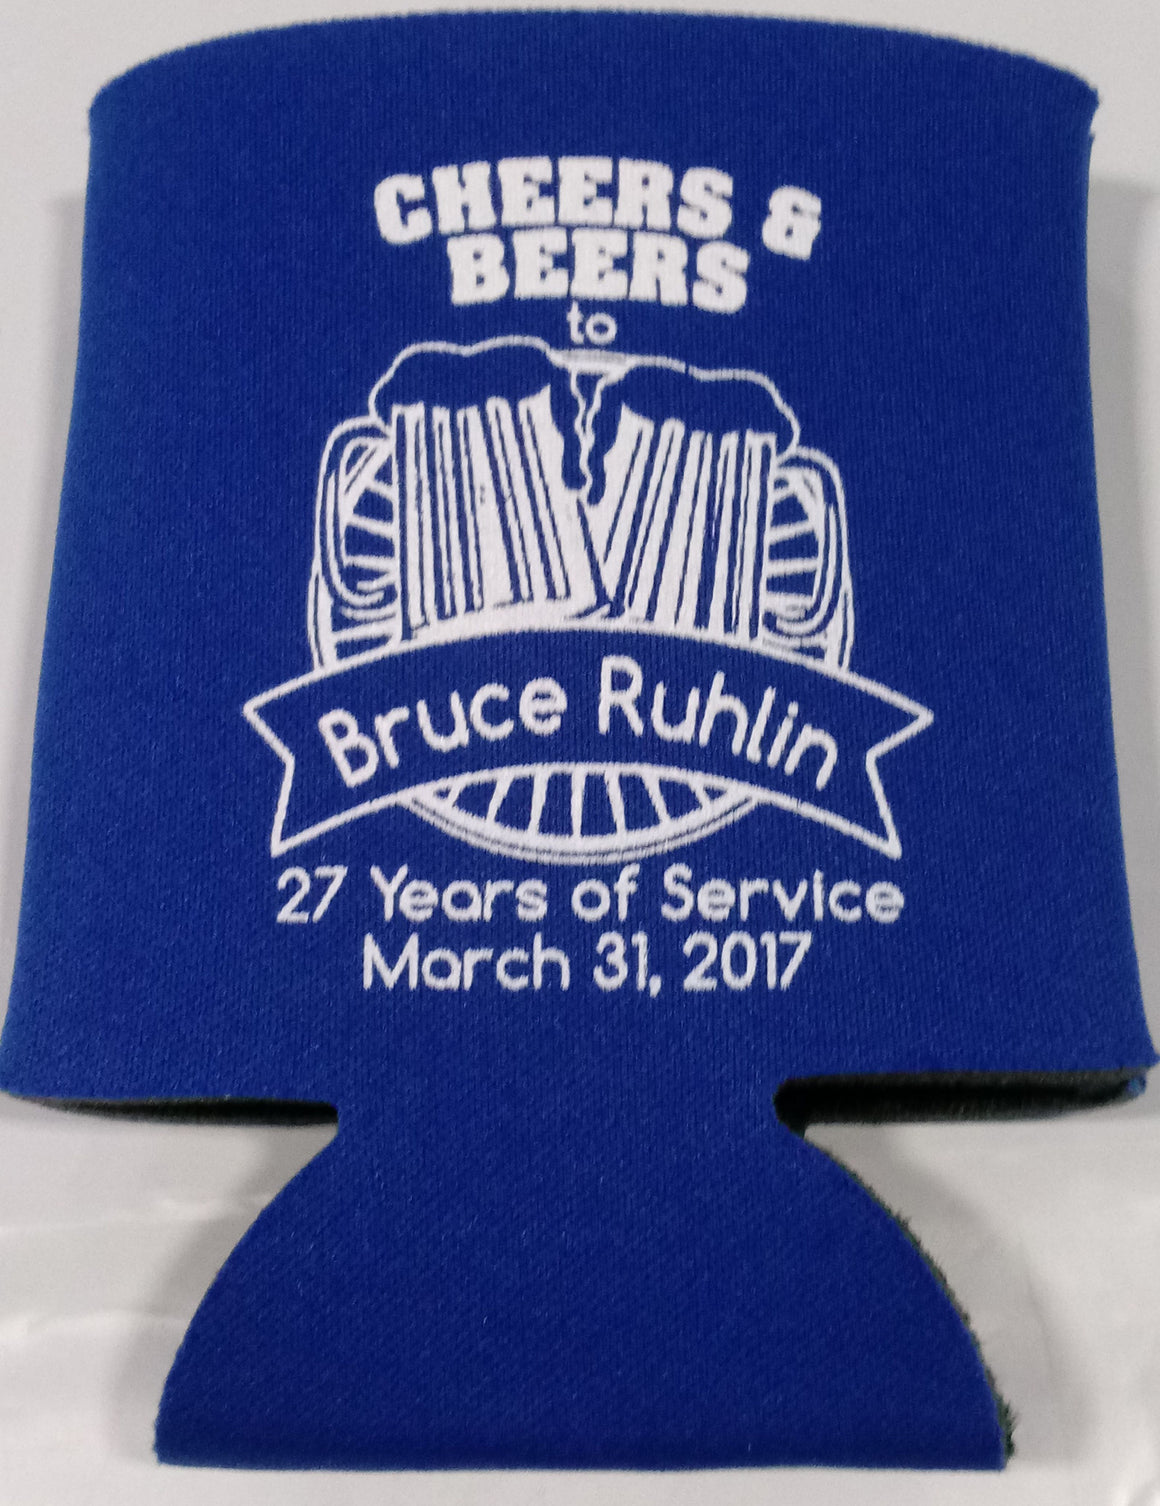 cheers and beers Retirement koozie Can Coolers